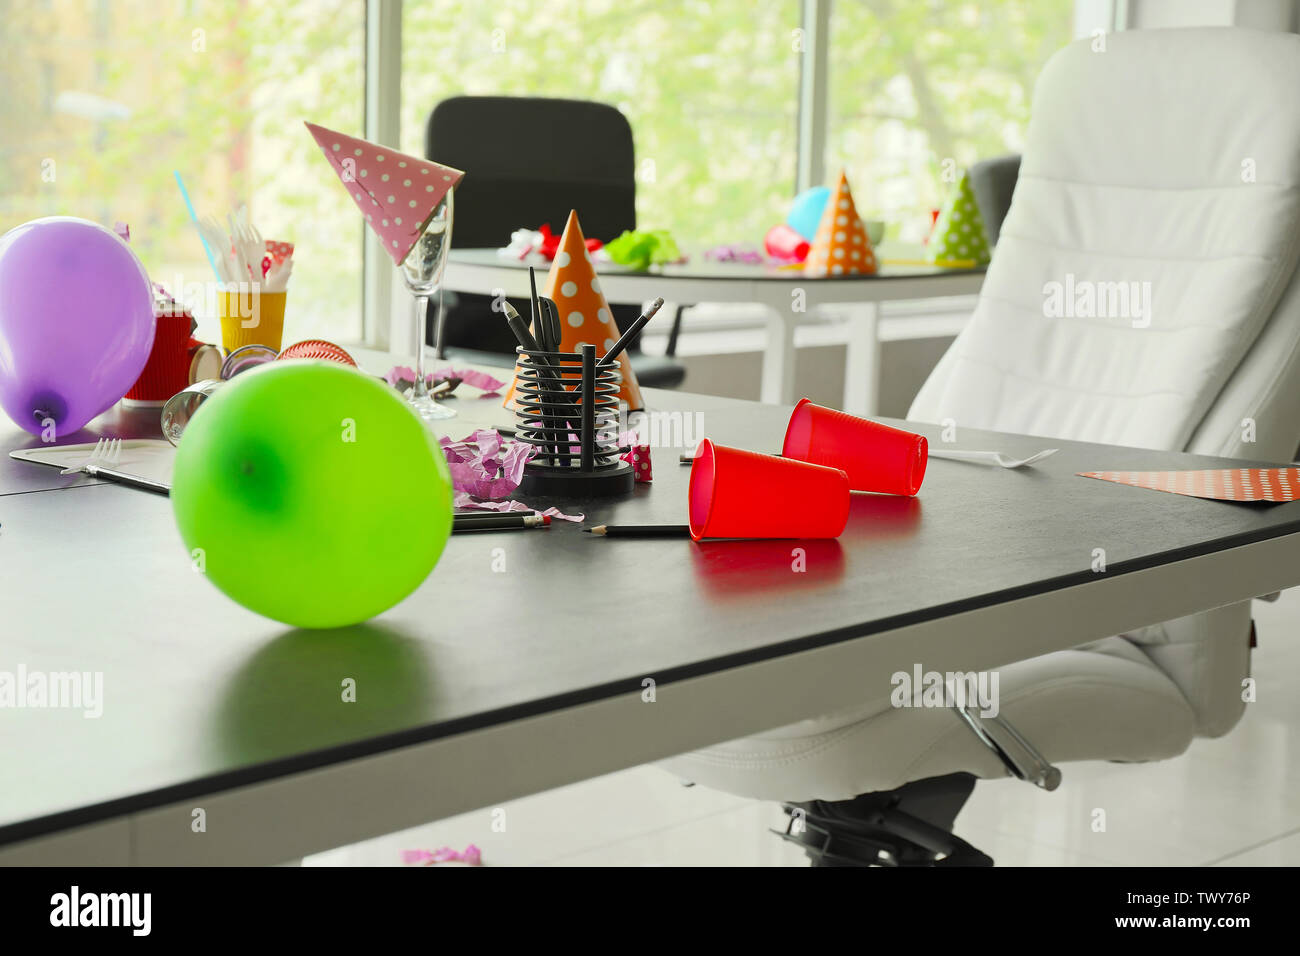 Table with trash in office after party - Stock Image